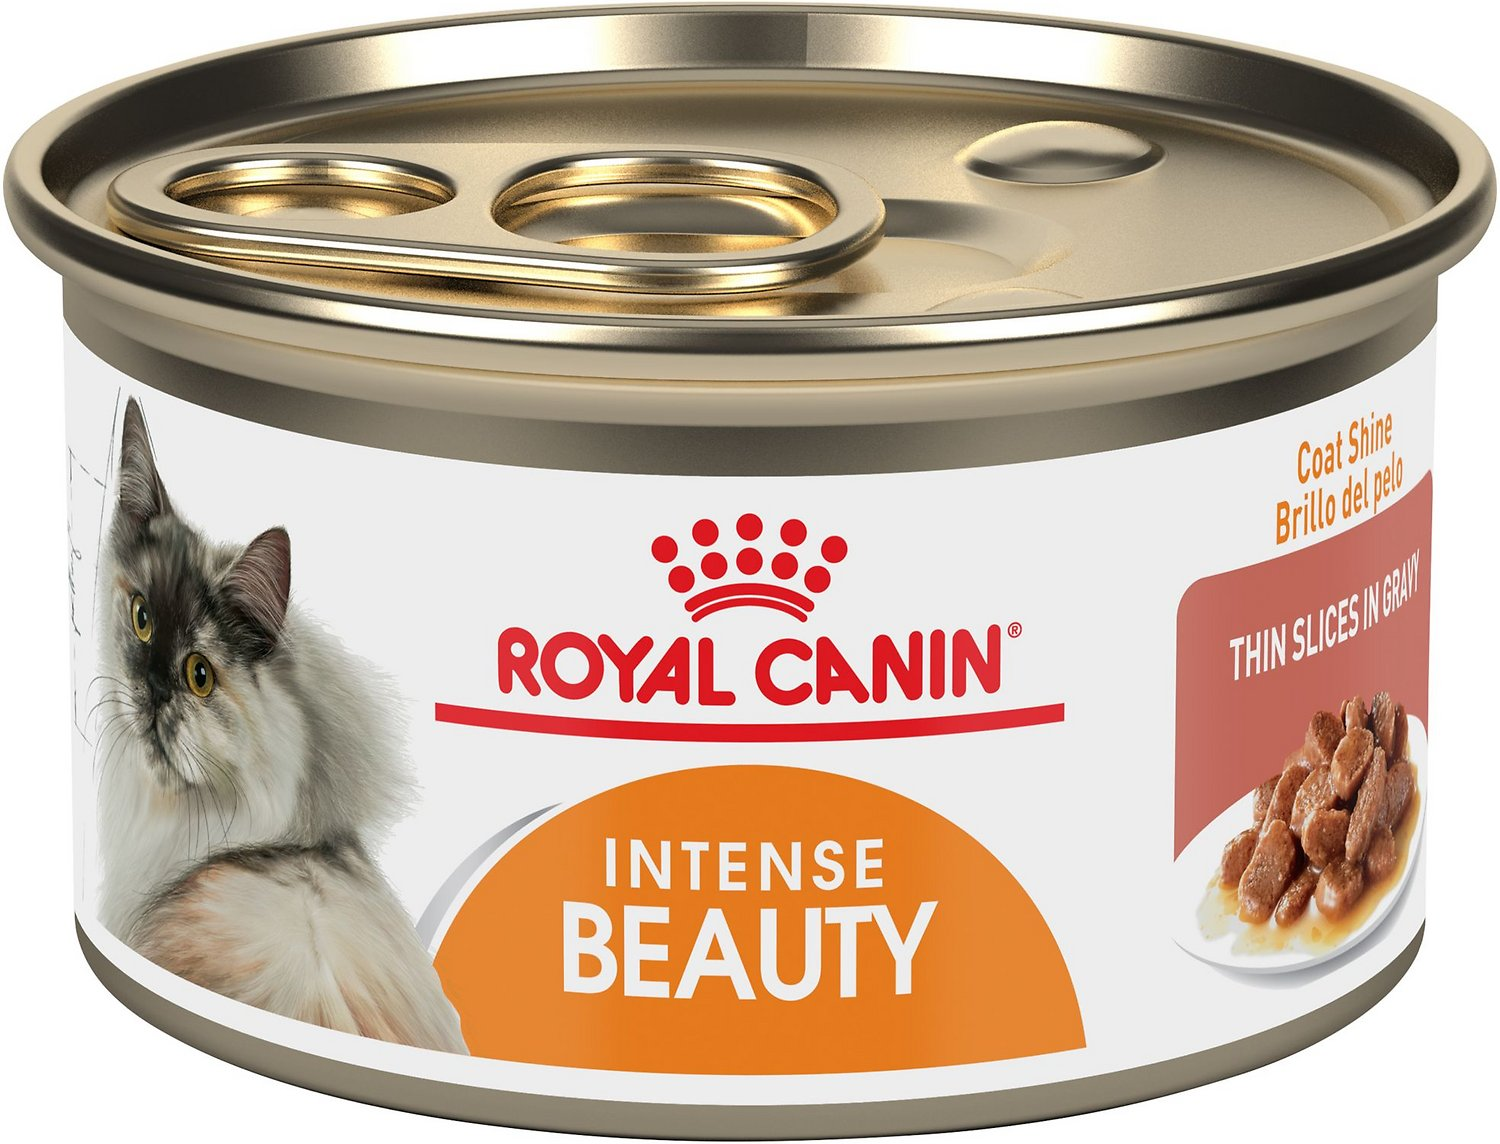 Royal Canin Intense Beauty Thin Slices in Gravy Canned Cat Food, 3-oz